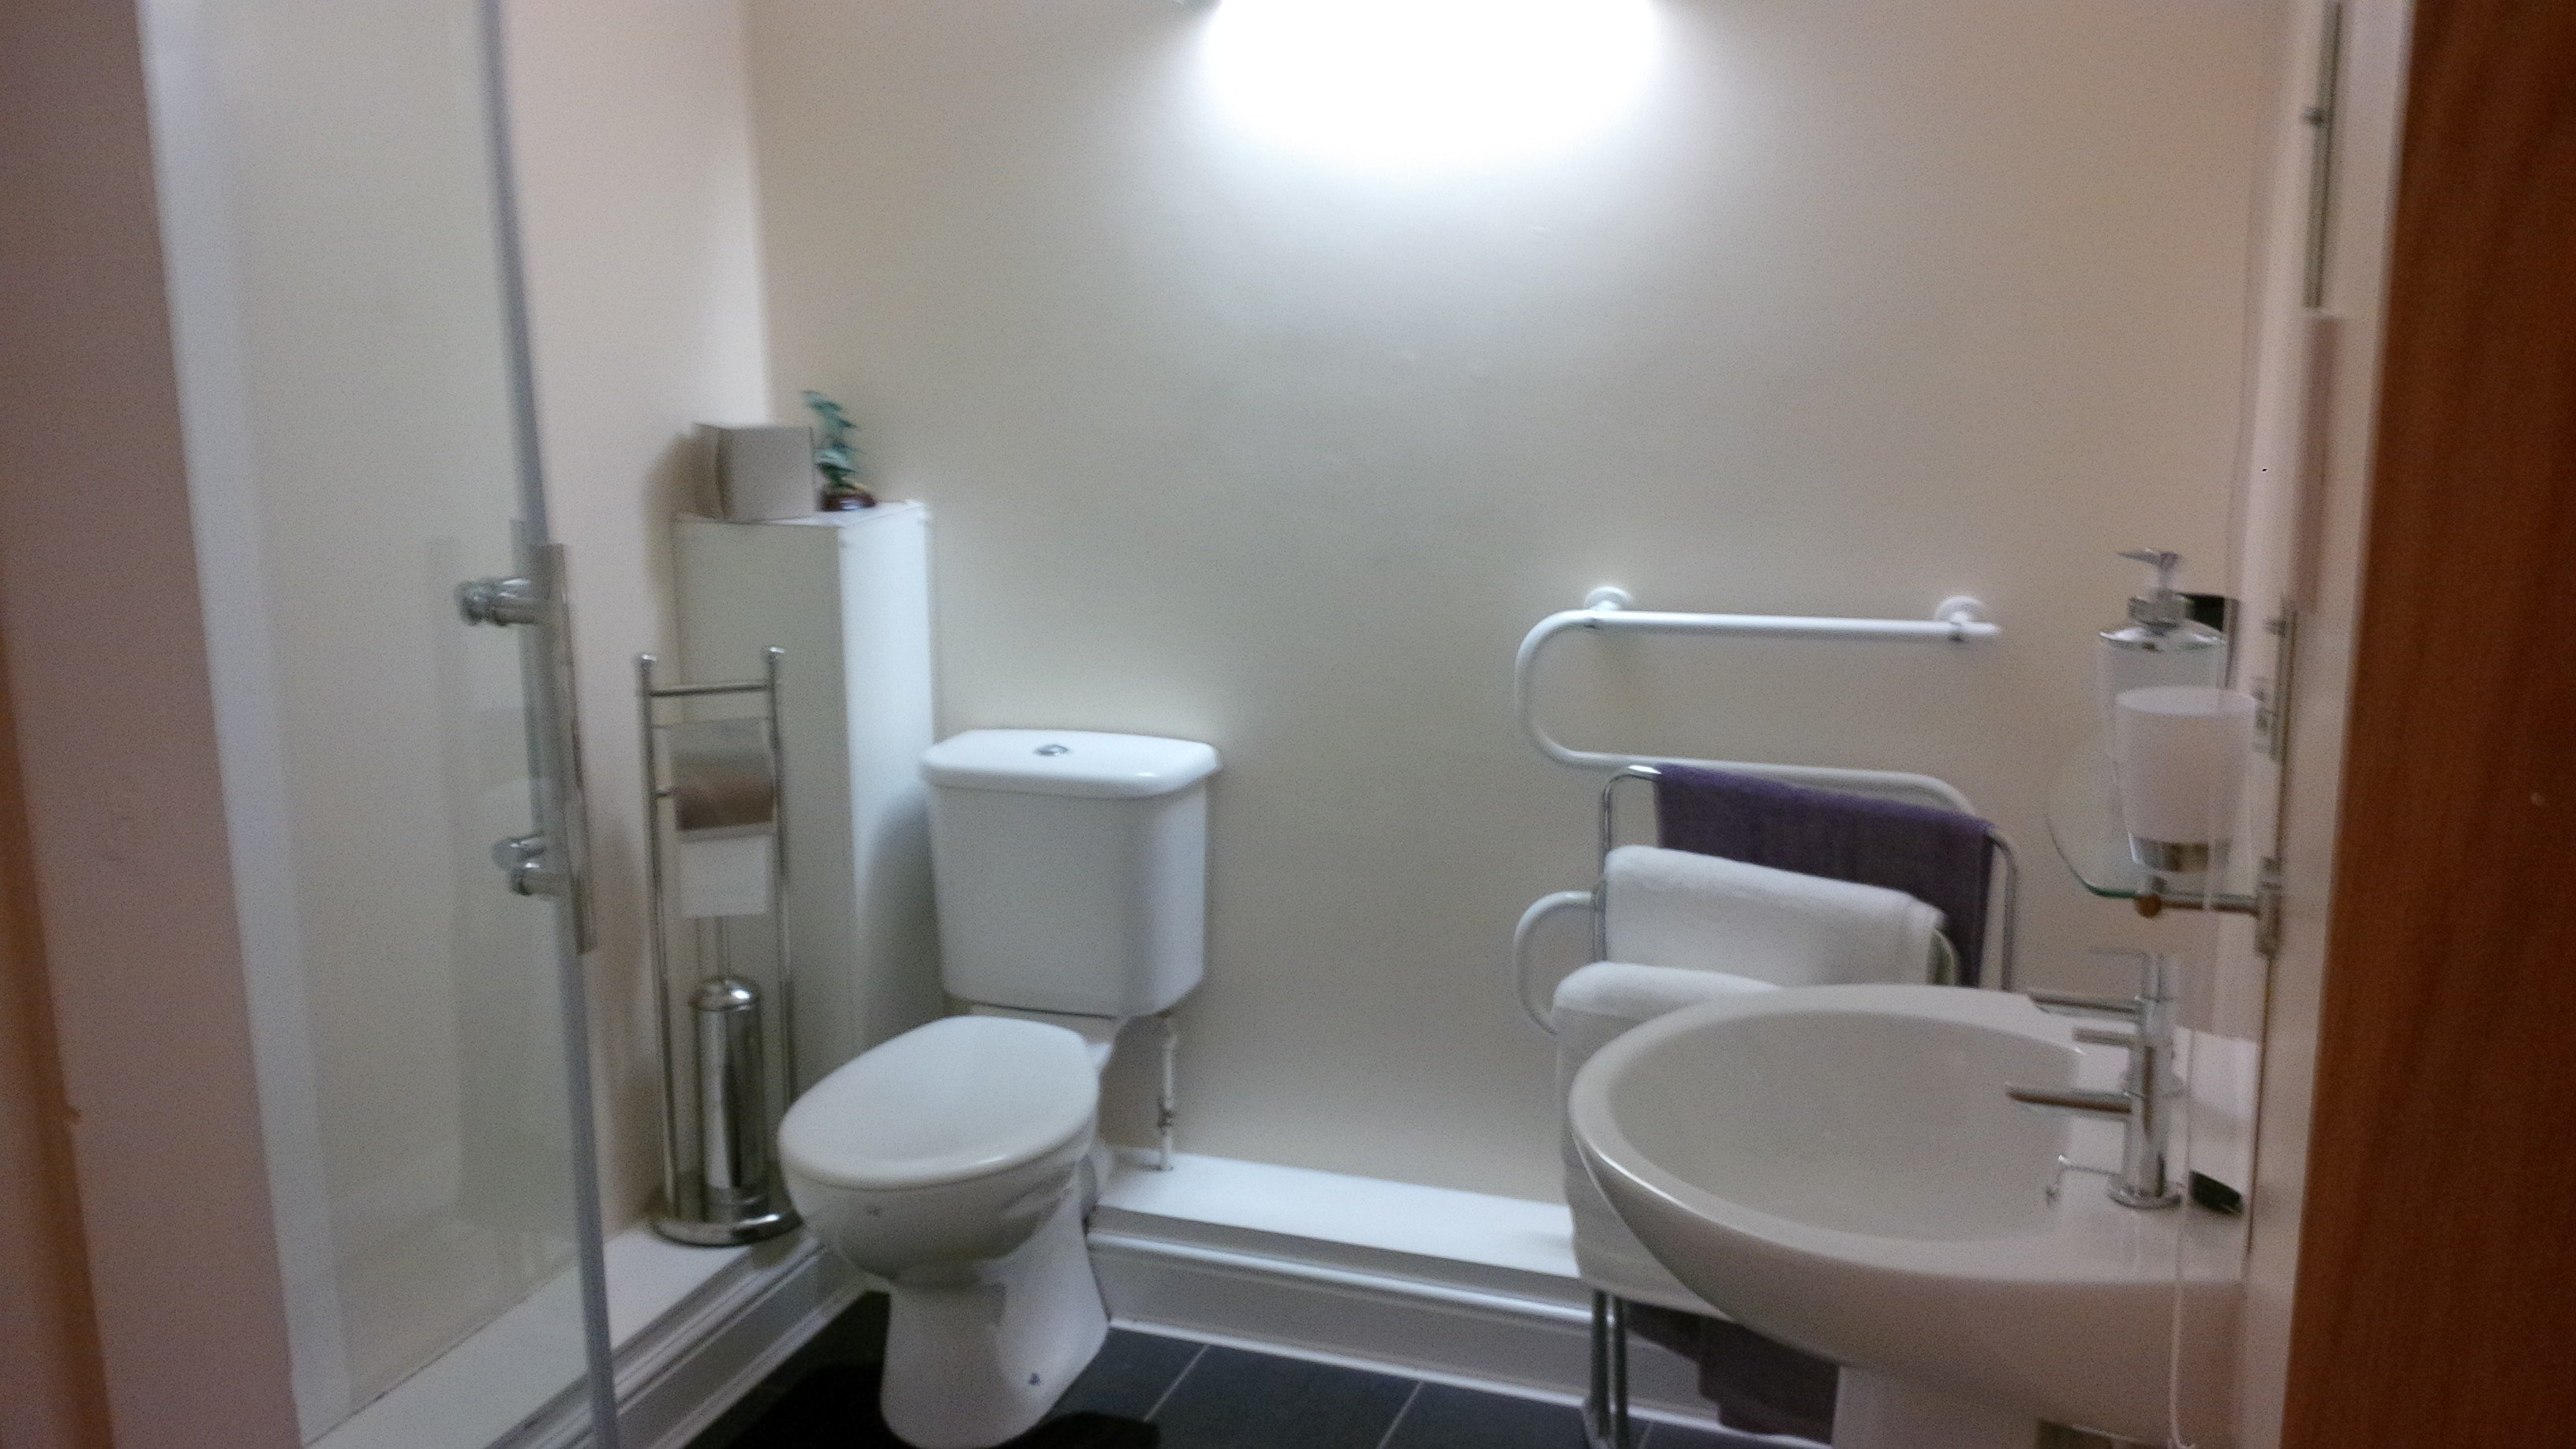 Restroom of the gastro pub in Northallerton